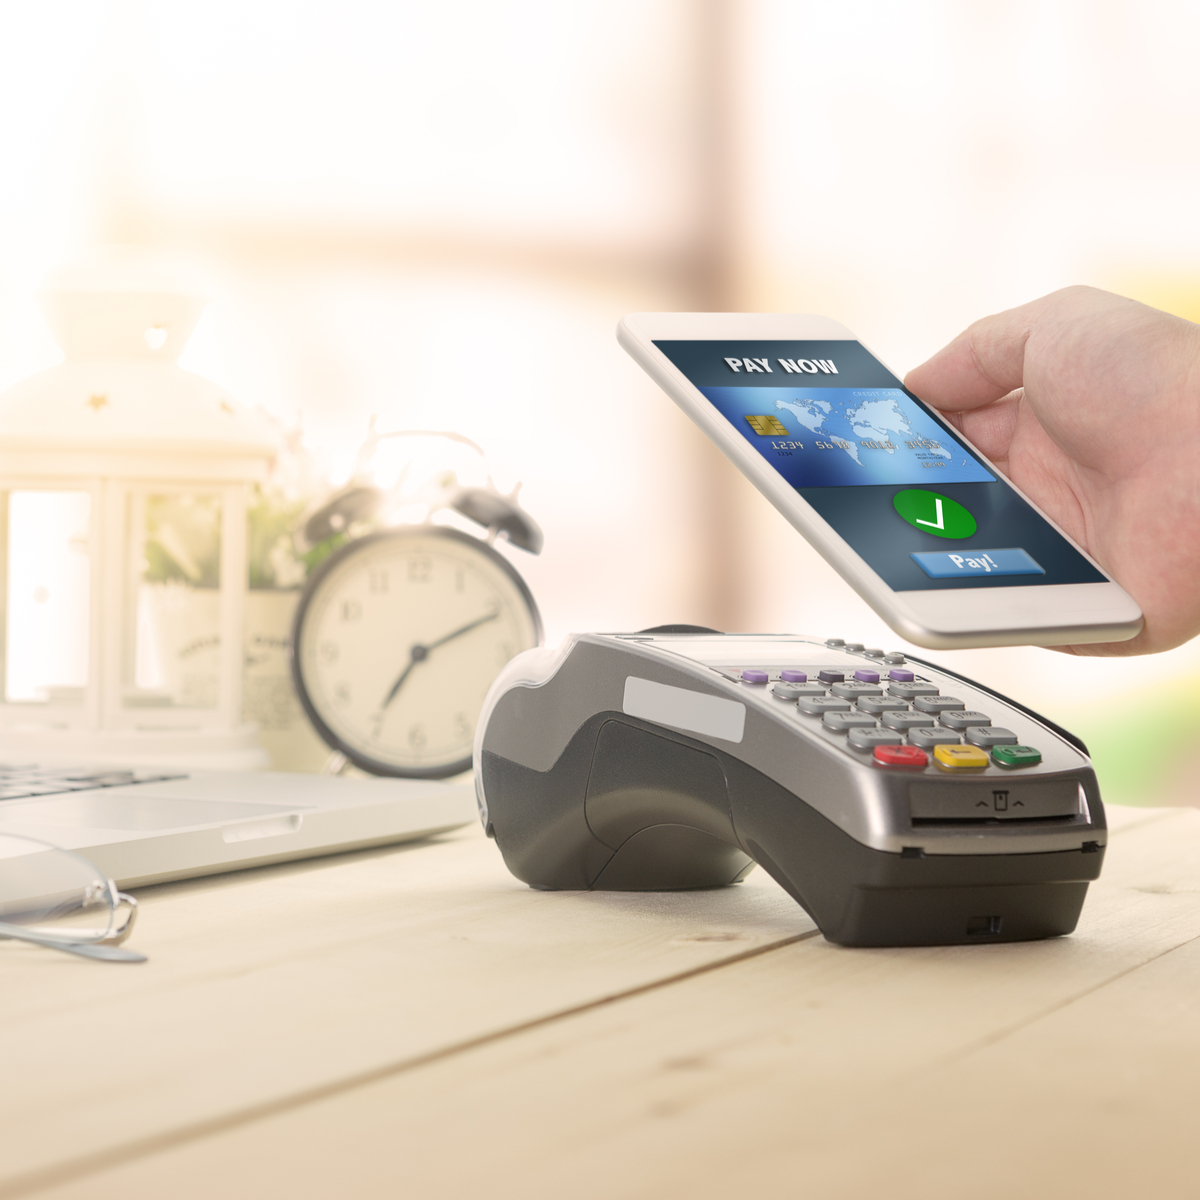 5 Reasons Why Your Business Should Have Mobile Merchant Services